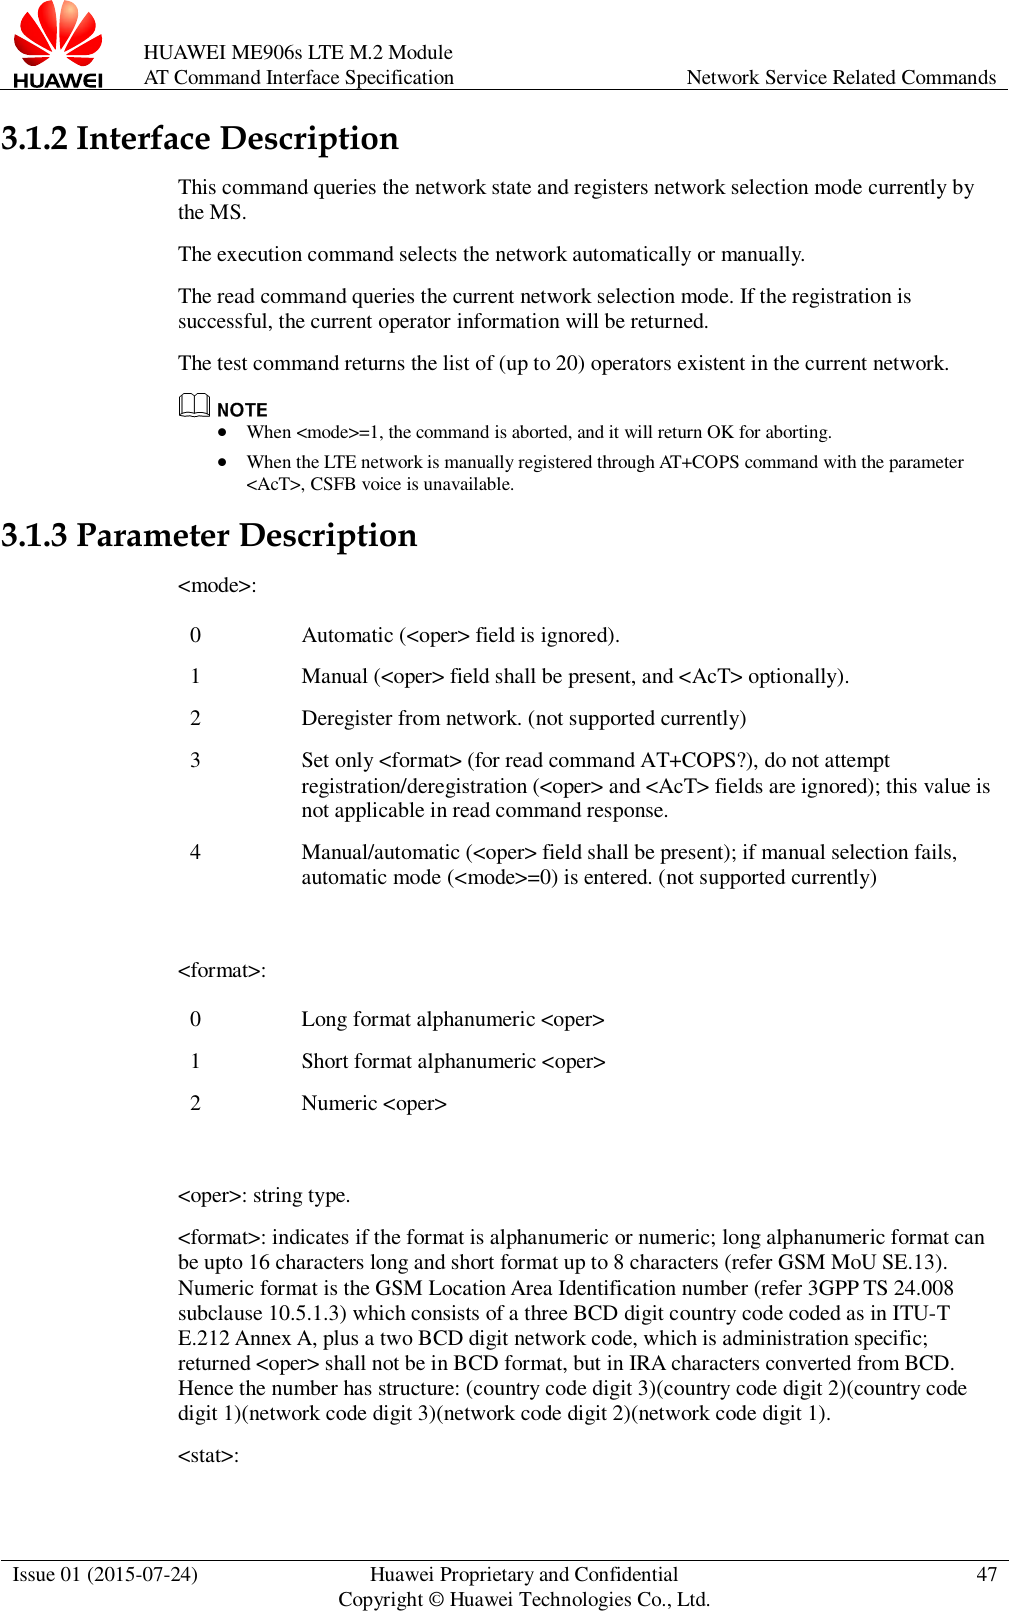 Huawei AT Command Interface Specification ME906s LTE